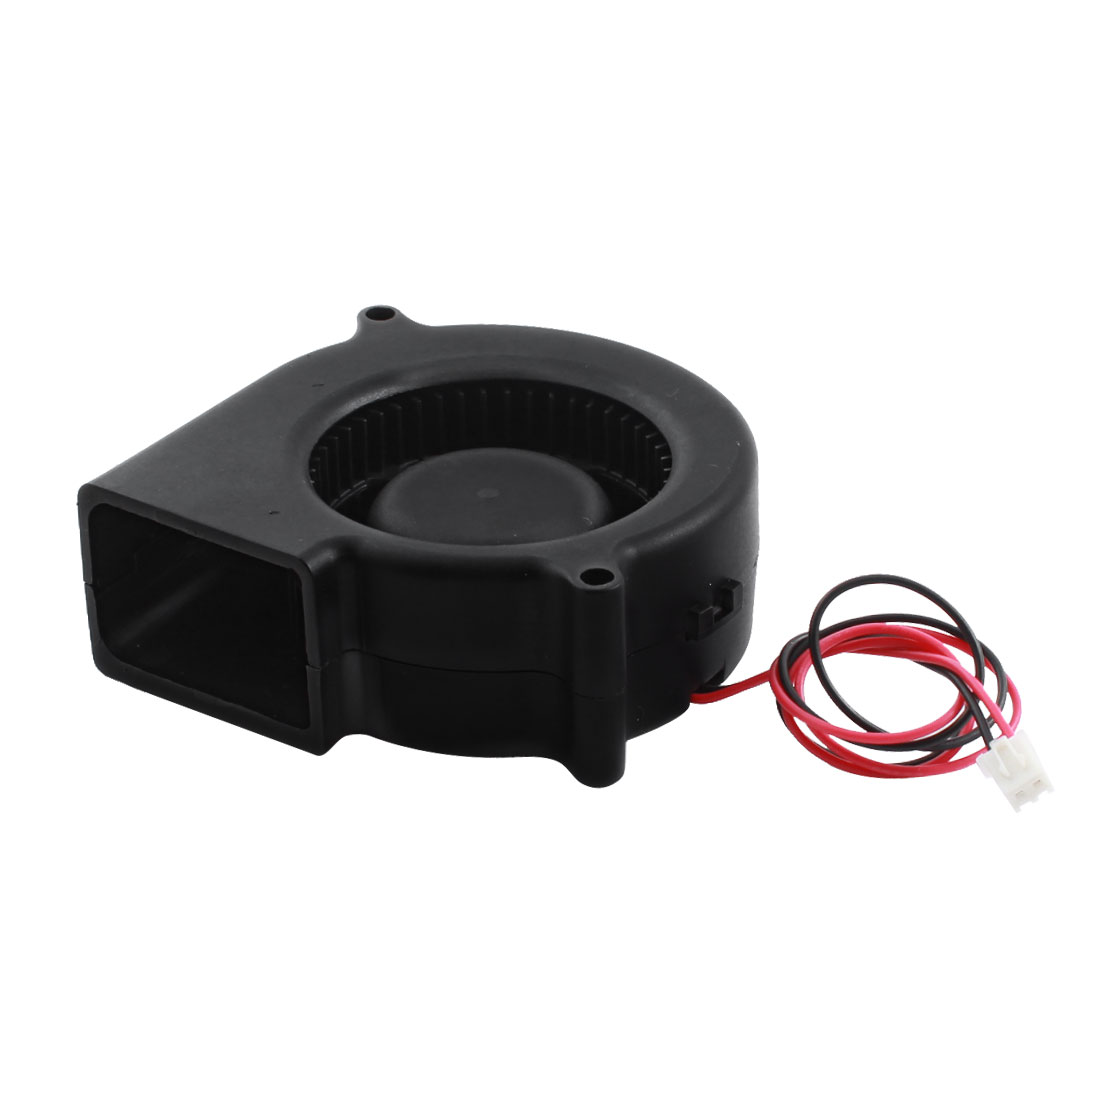 DC12V JST-XH Connector Black Plastic Brushless Cooling Blower Axial Fan 75mm x 30mm